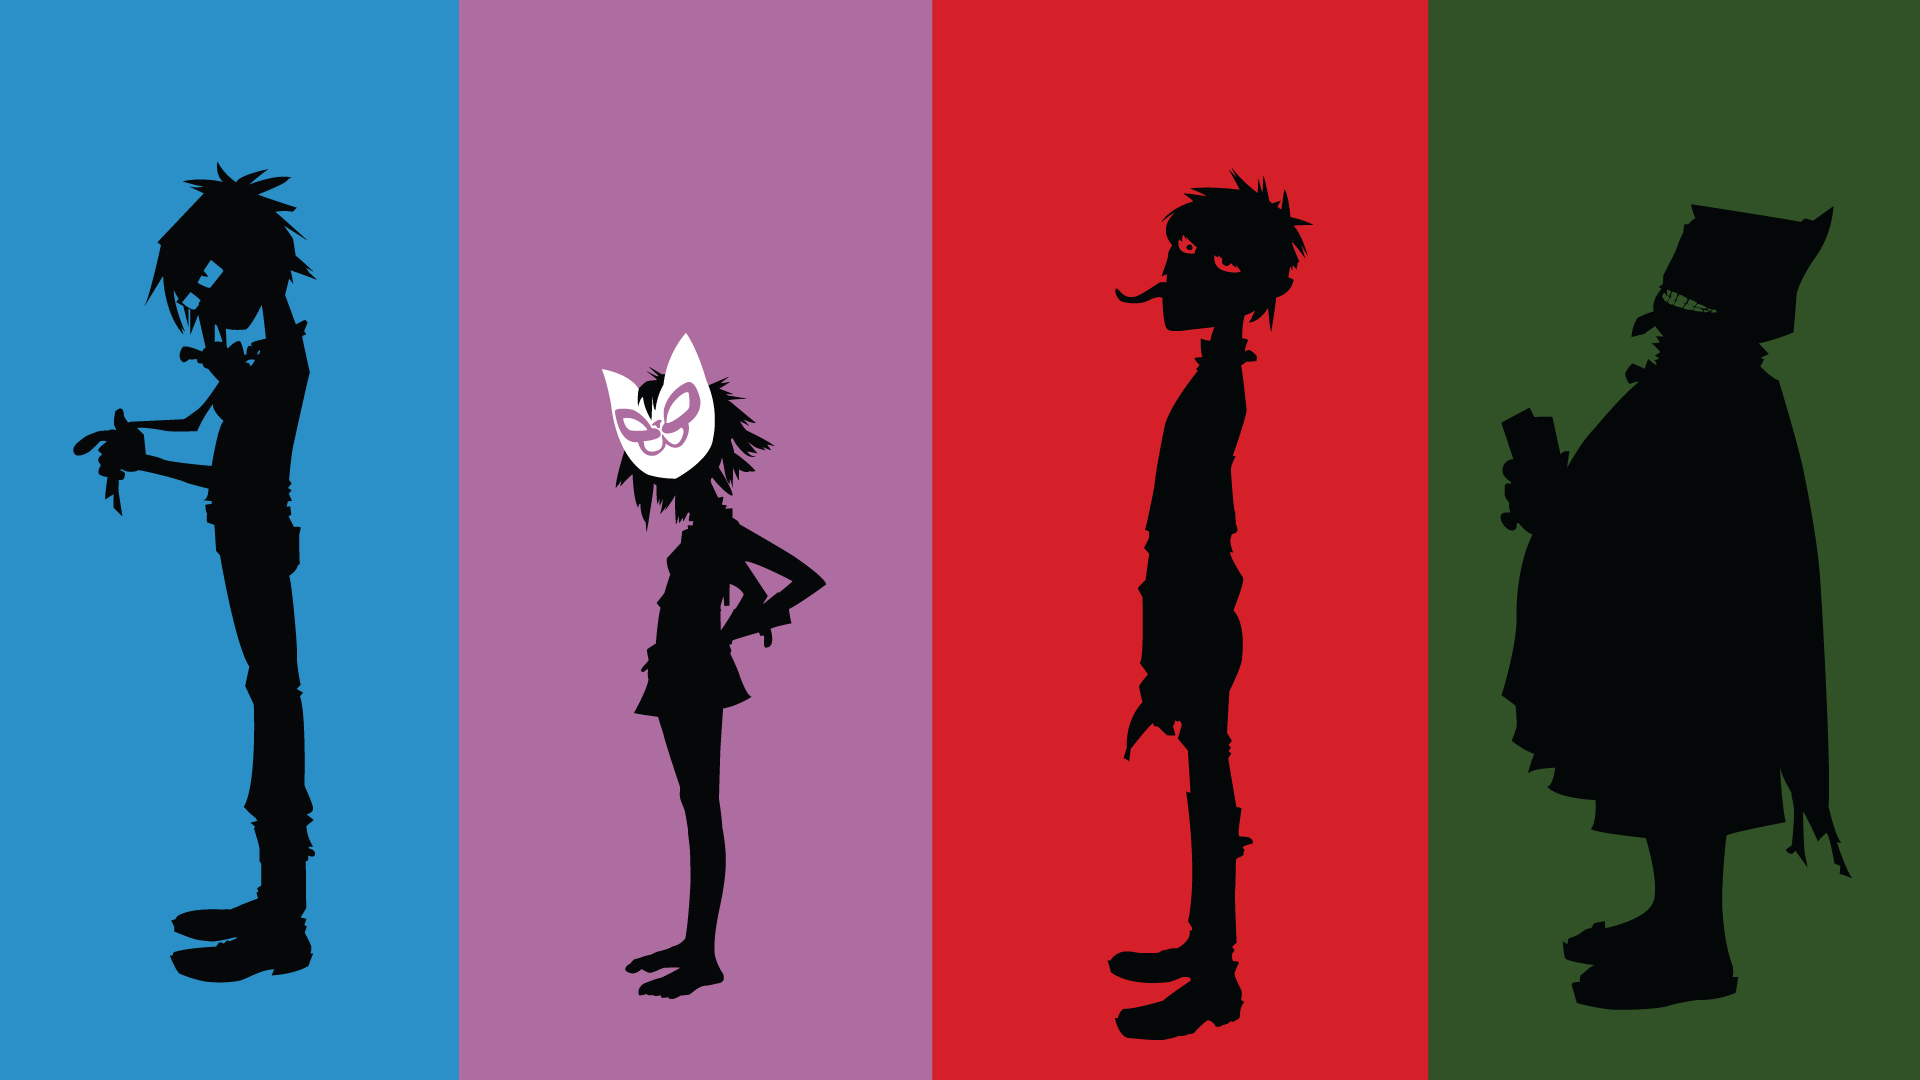 Download Gorillaz Wallpaper Hd Backgrounds Download Itlcat